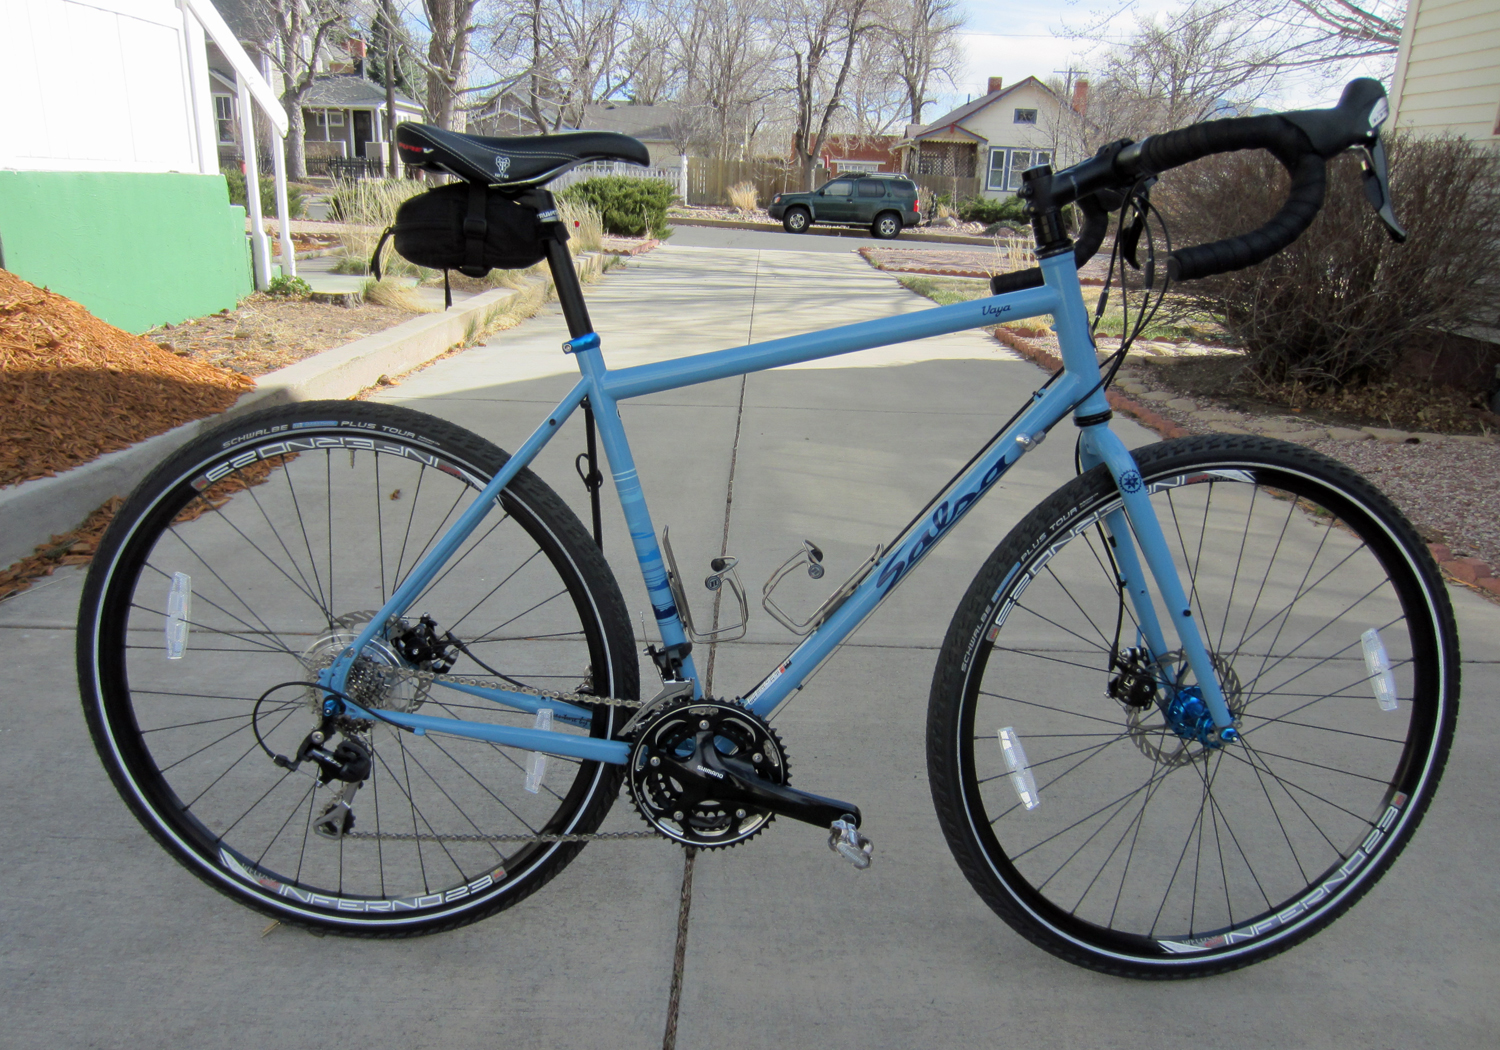 salsa vaya The Salsa Vaya, coming to an Adventure Cyclist issue near you.